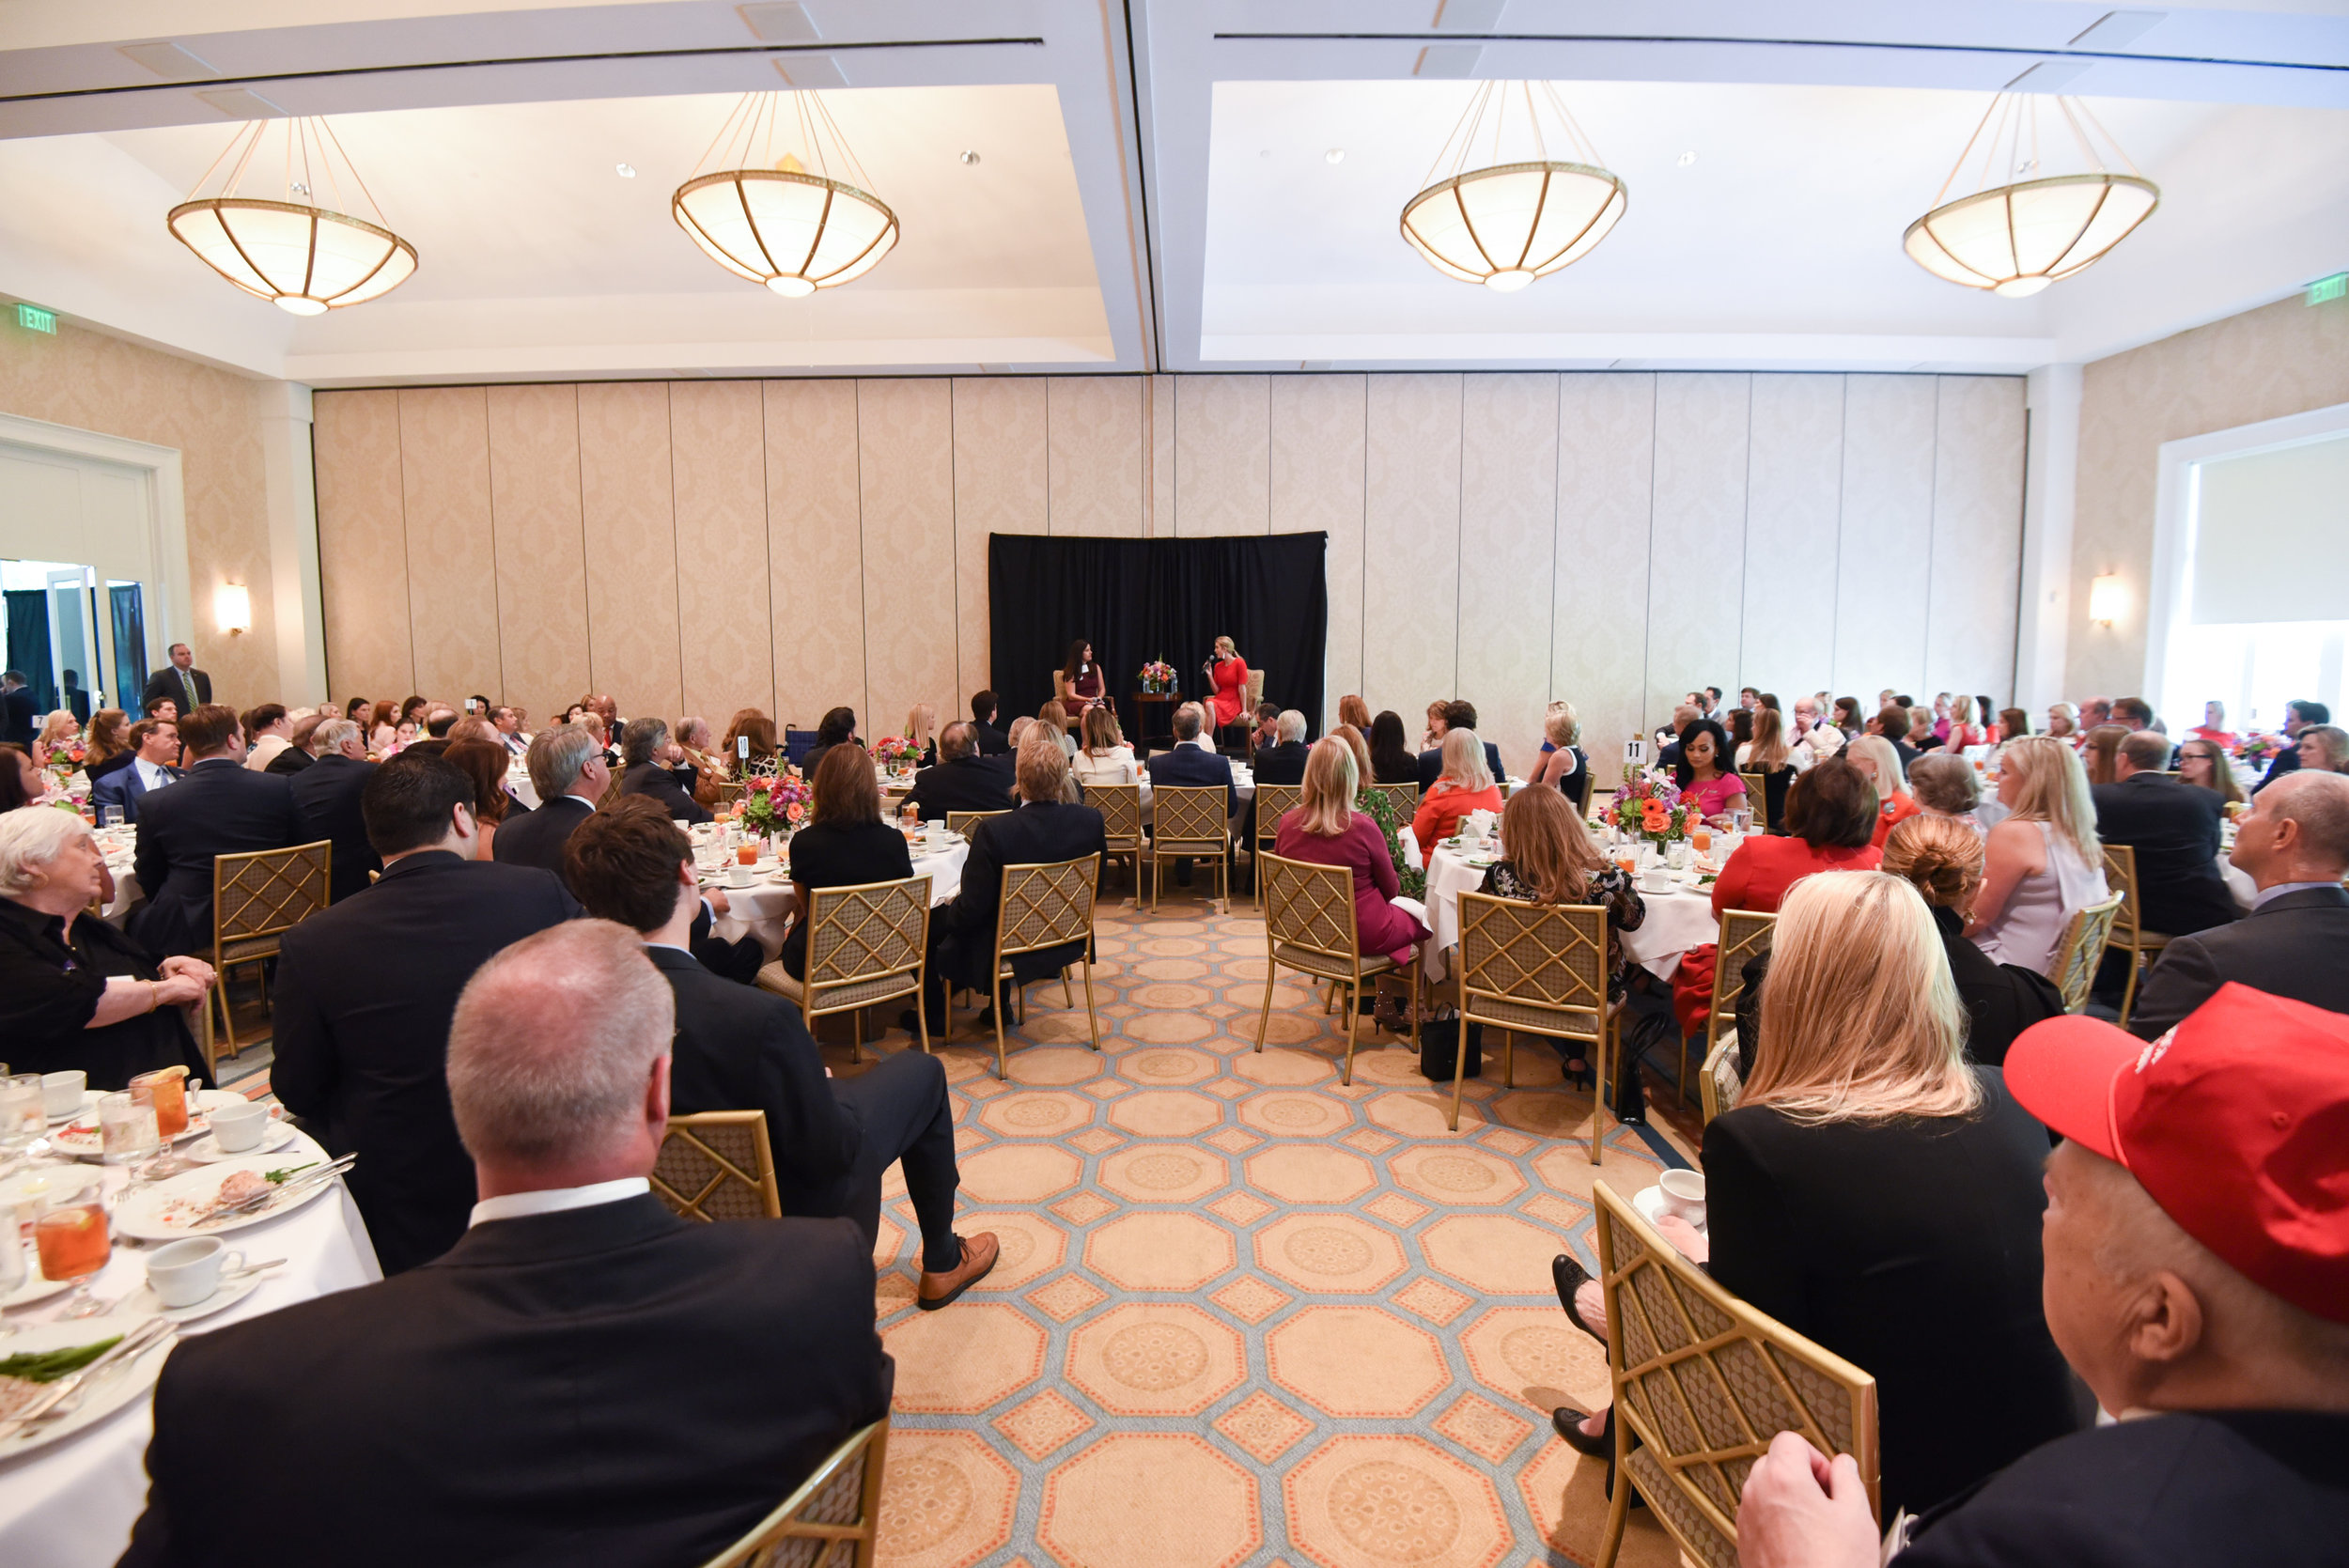 Ivanka Trump and supporters of her father, Donald J. Trump, at a Dallas luncheon in 2016.